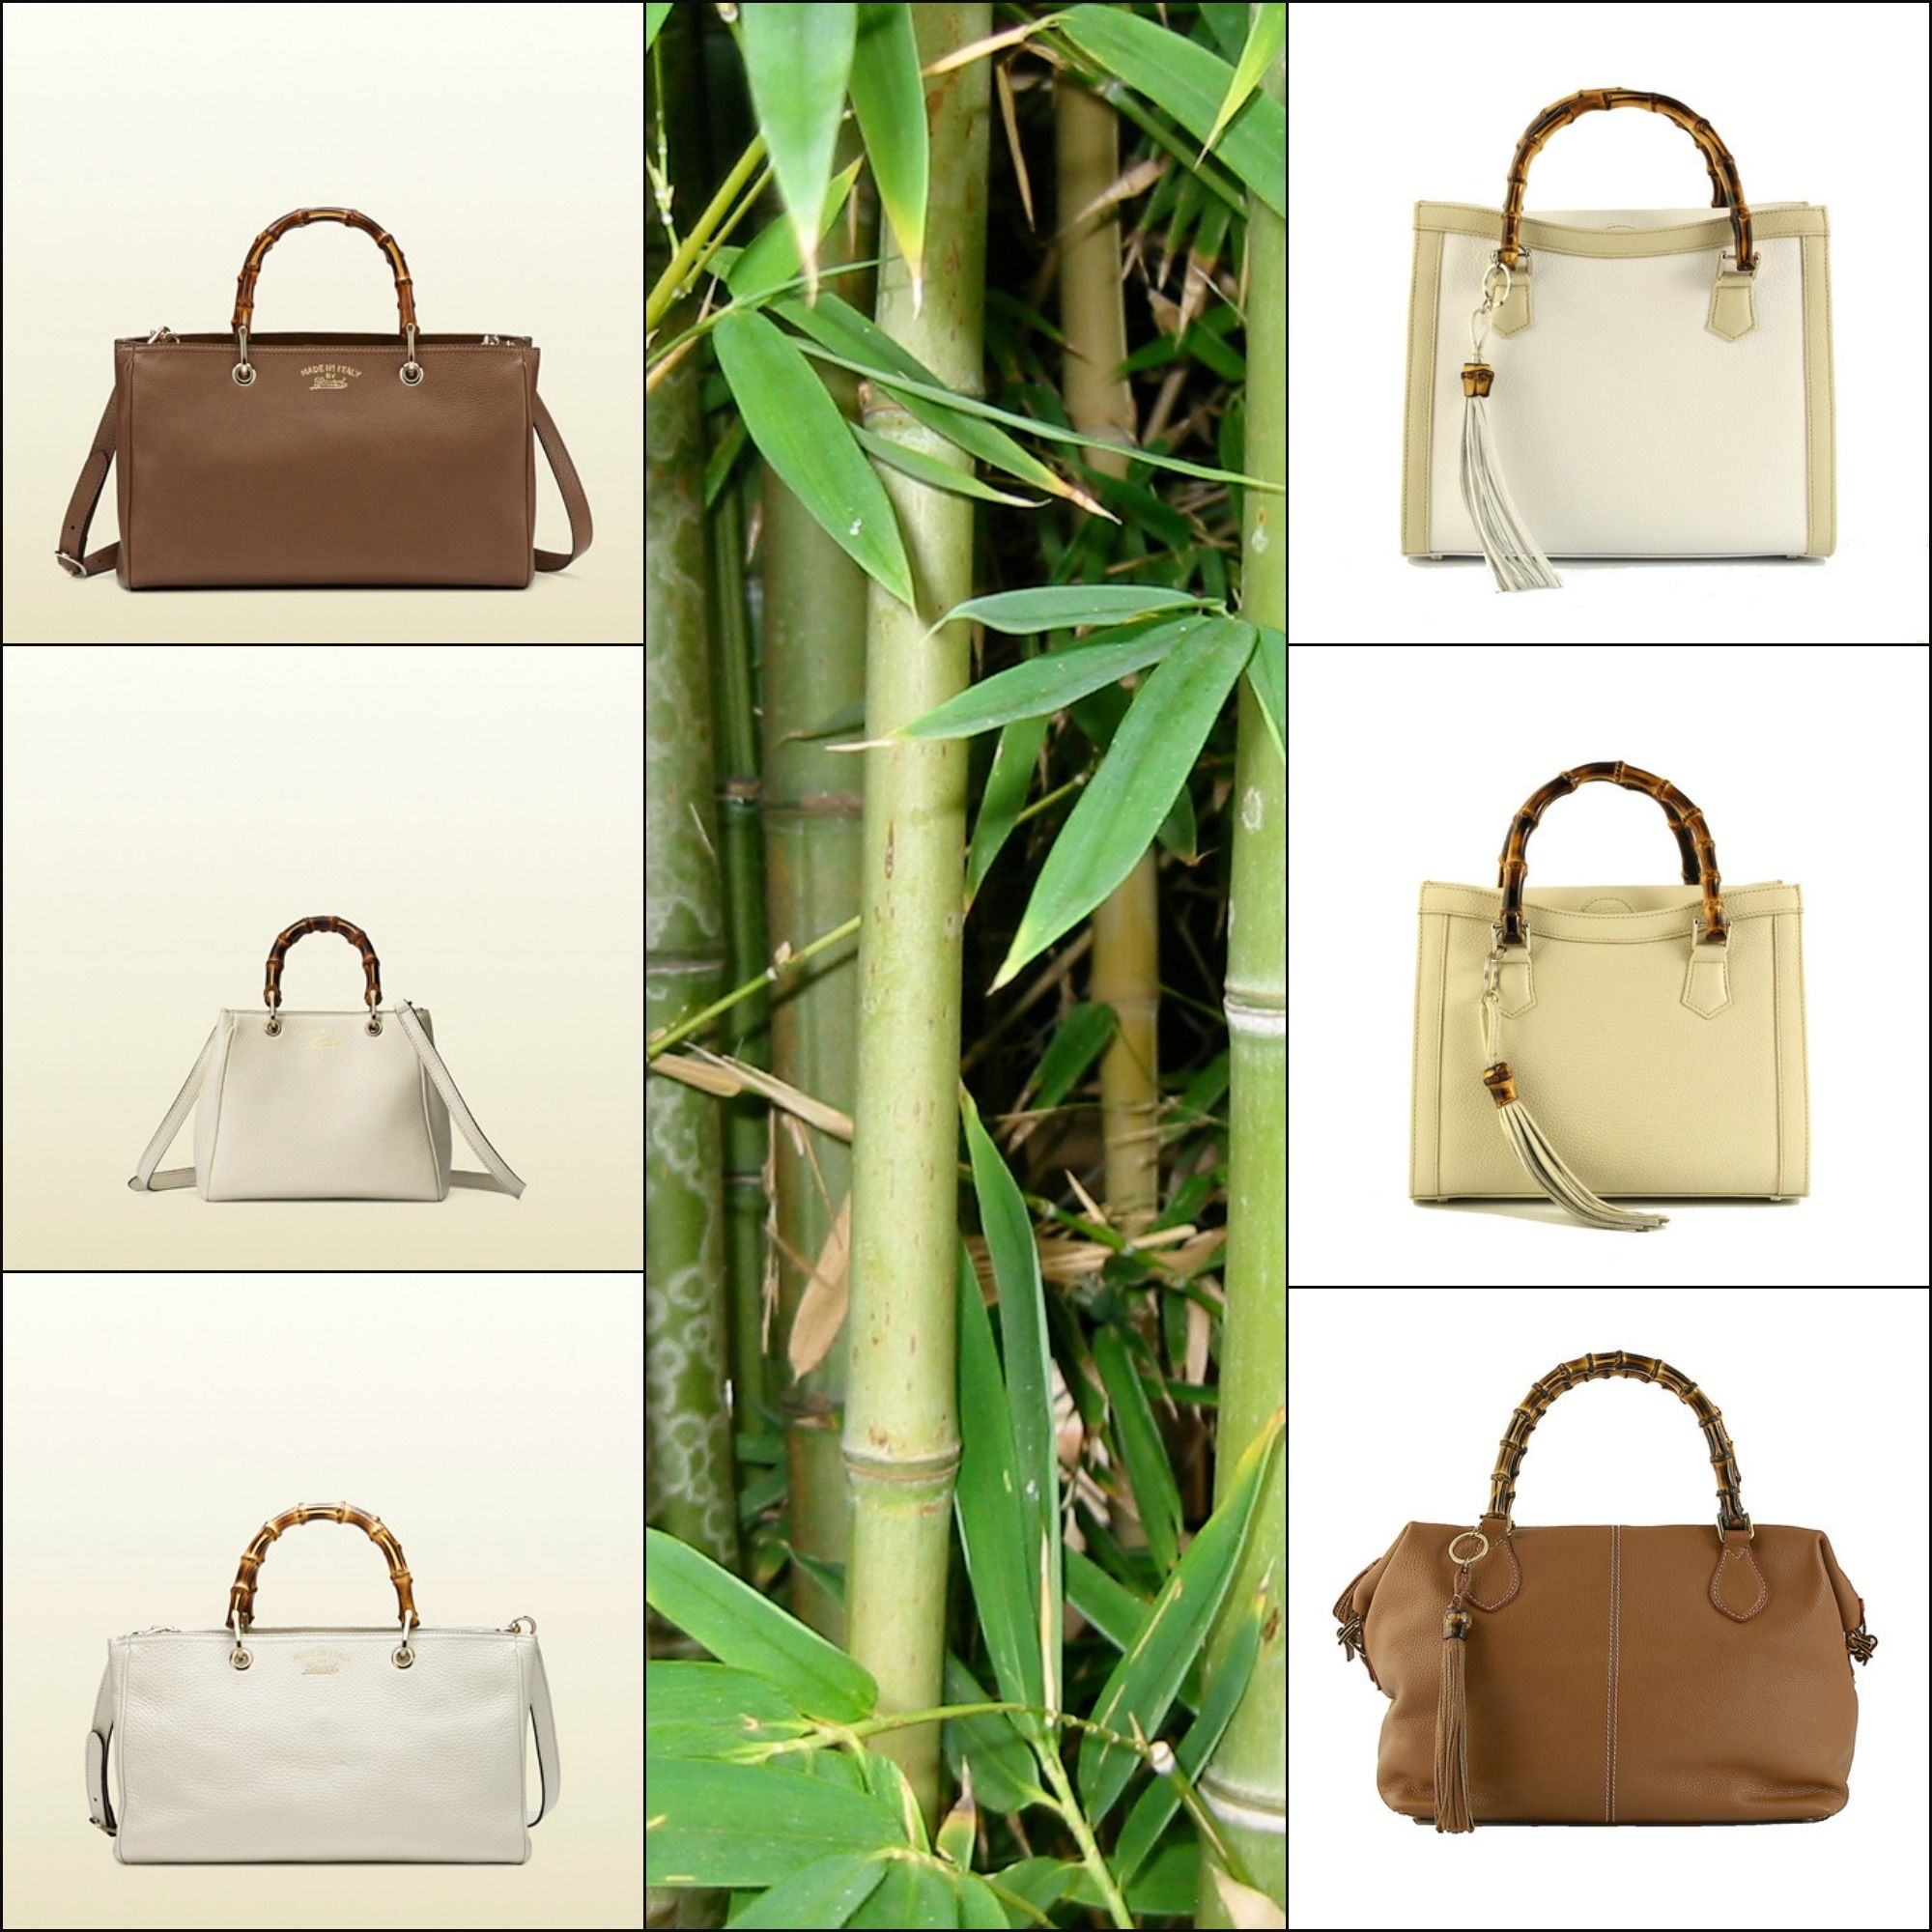 Collezione borse v73 primavera estate 2014 foto 6 40 bags - Classy Bamboo Bags By Gucci And Buti Buti Bags Available On Stylenovo Madeinitaly